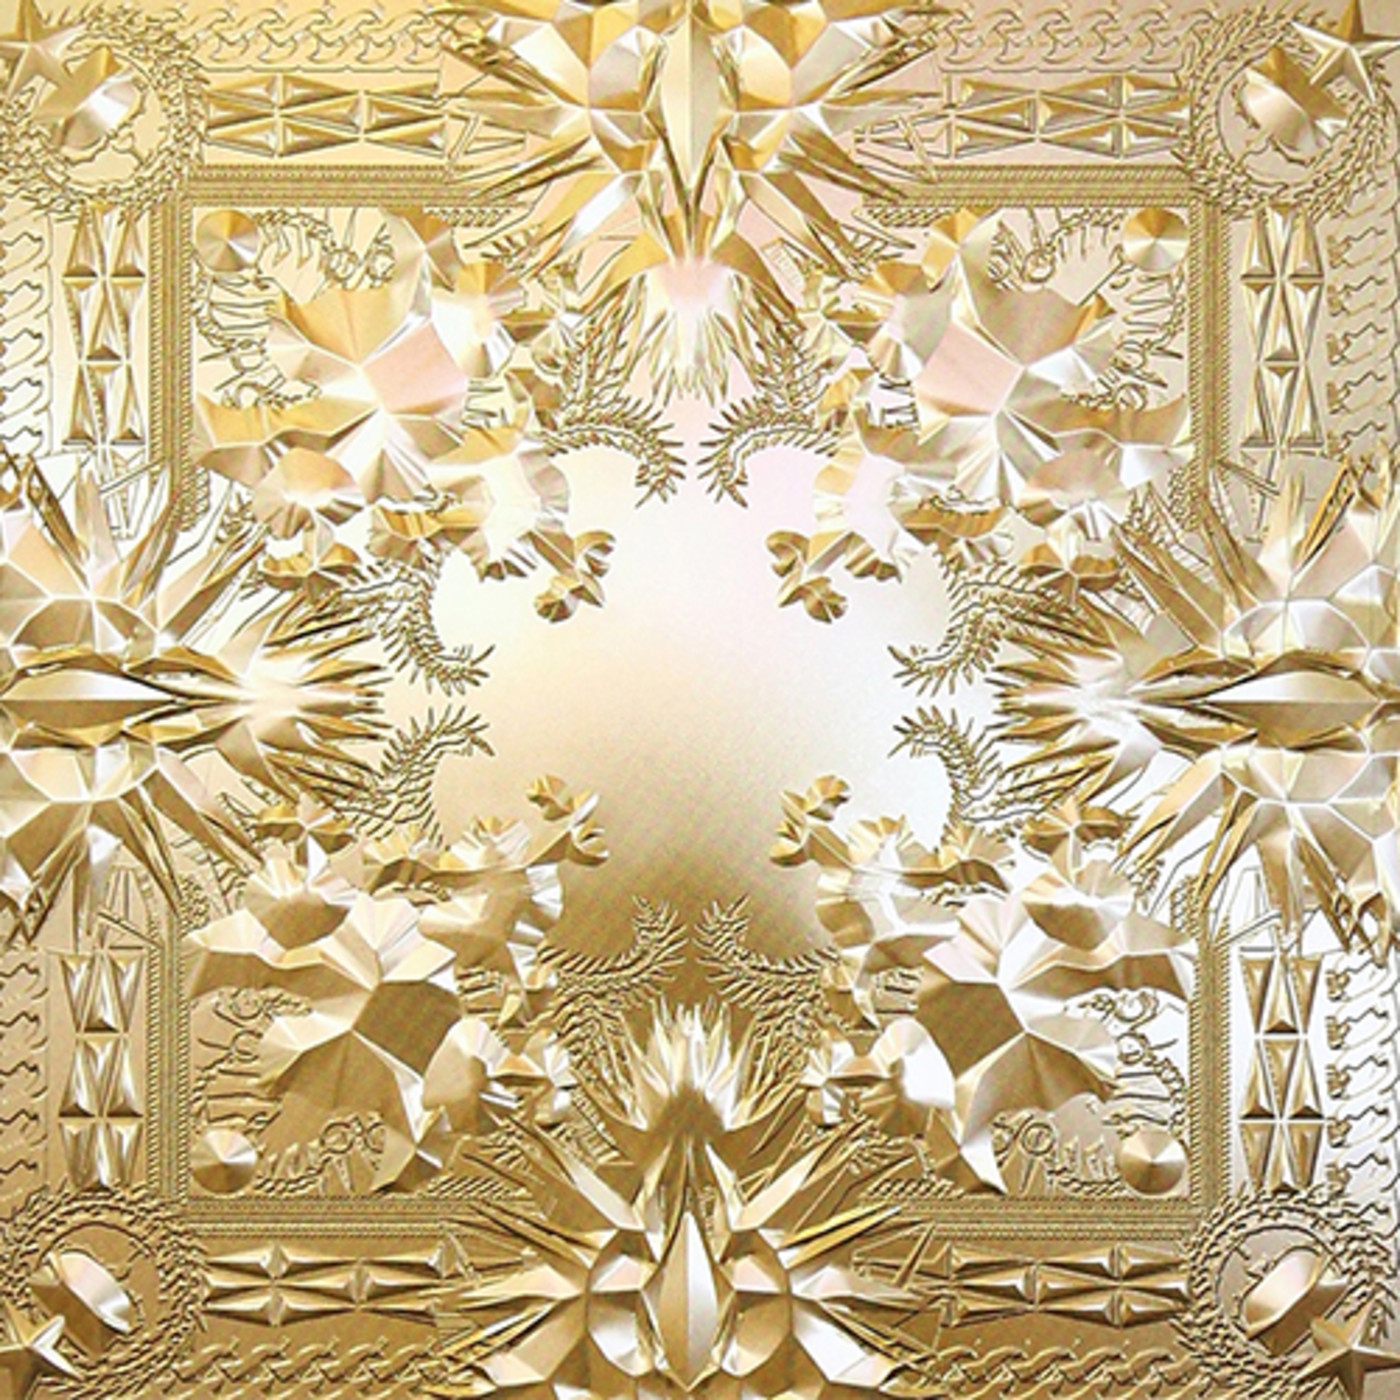 Jay Z and Kanye West – Watch the Throne (2011)